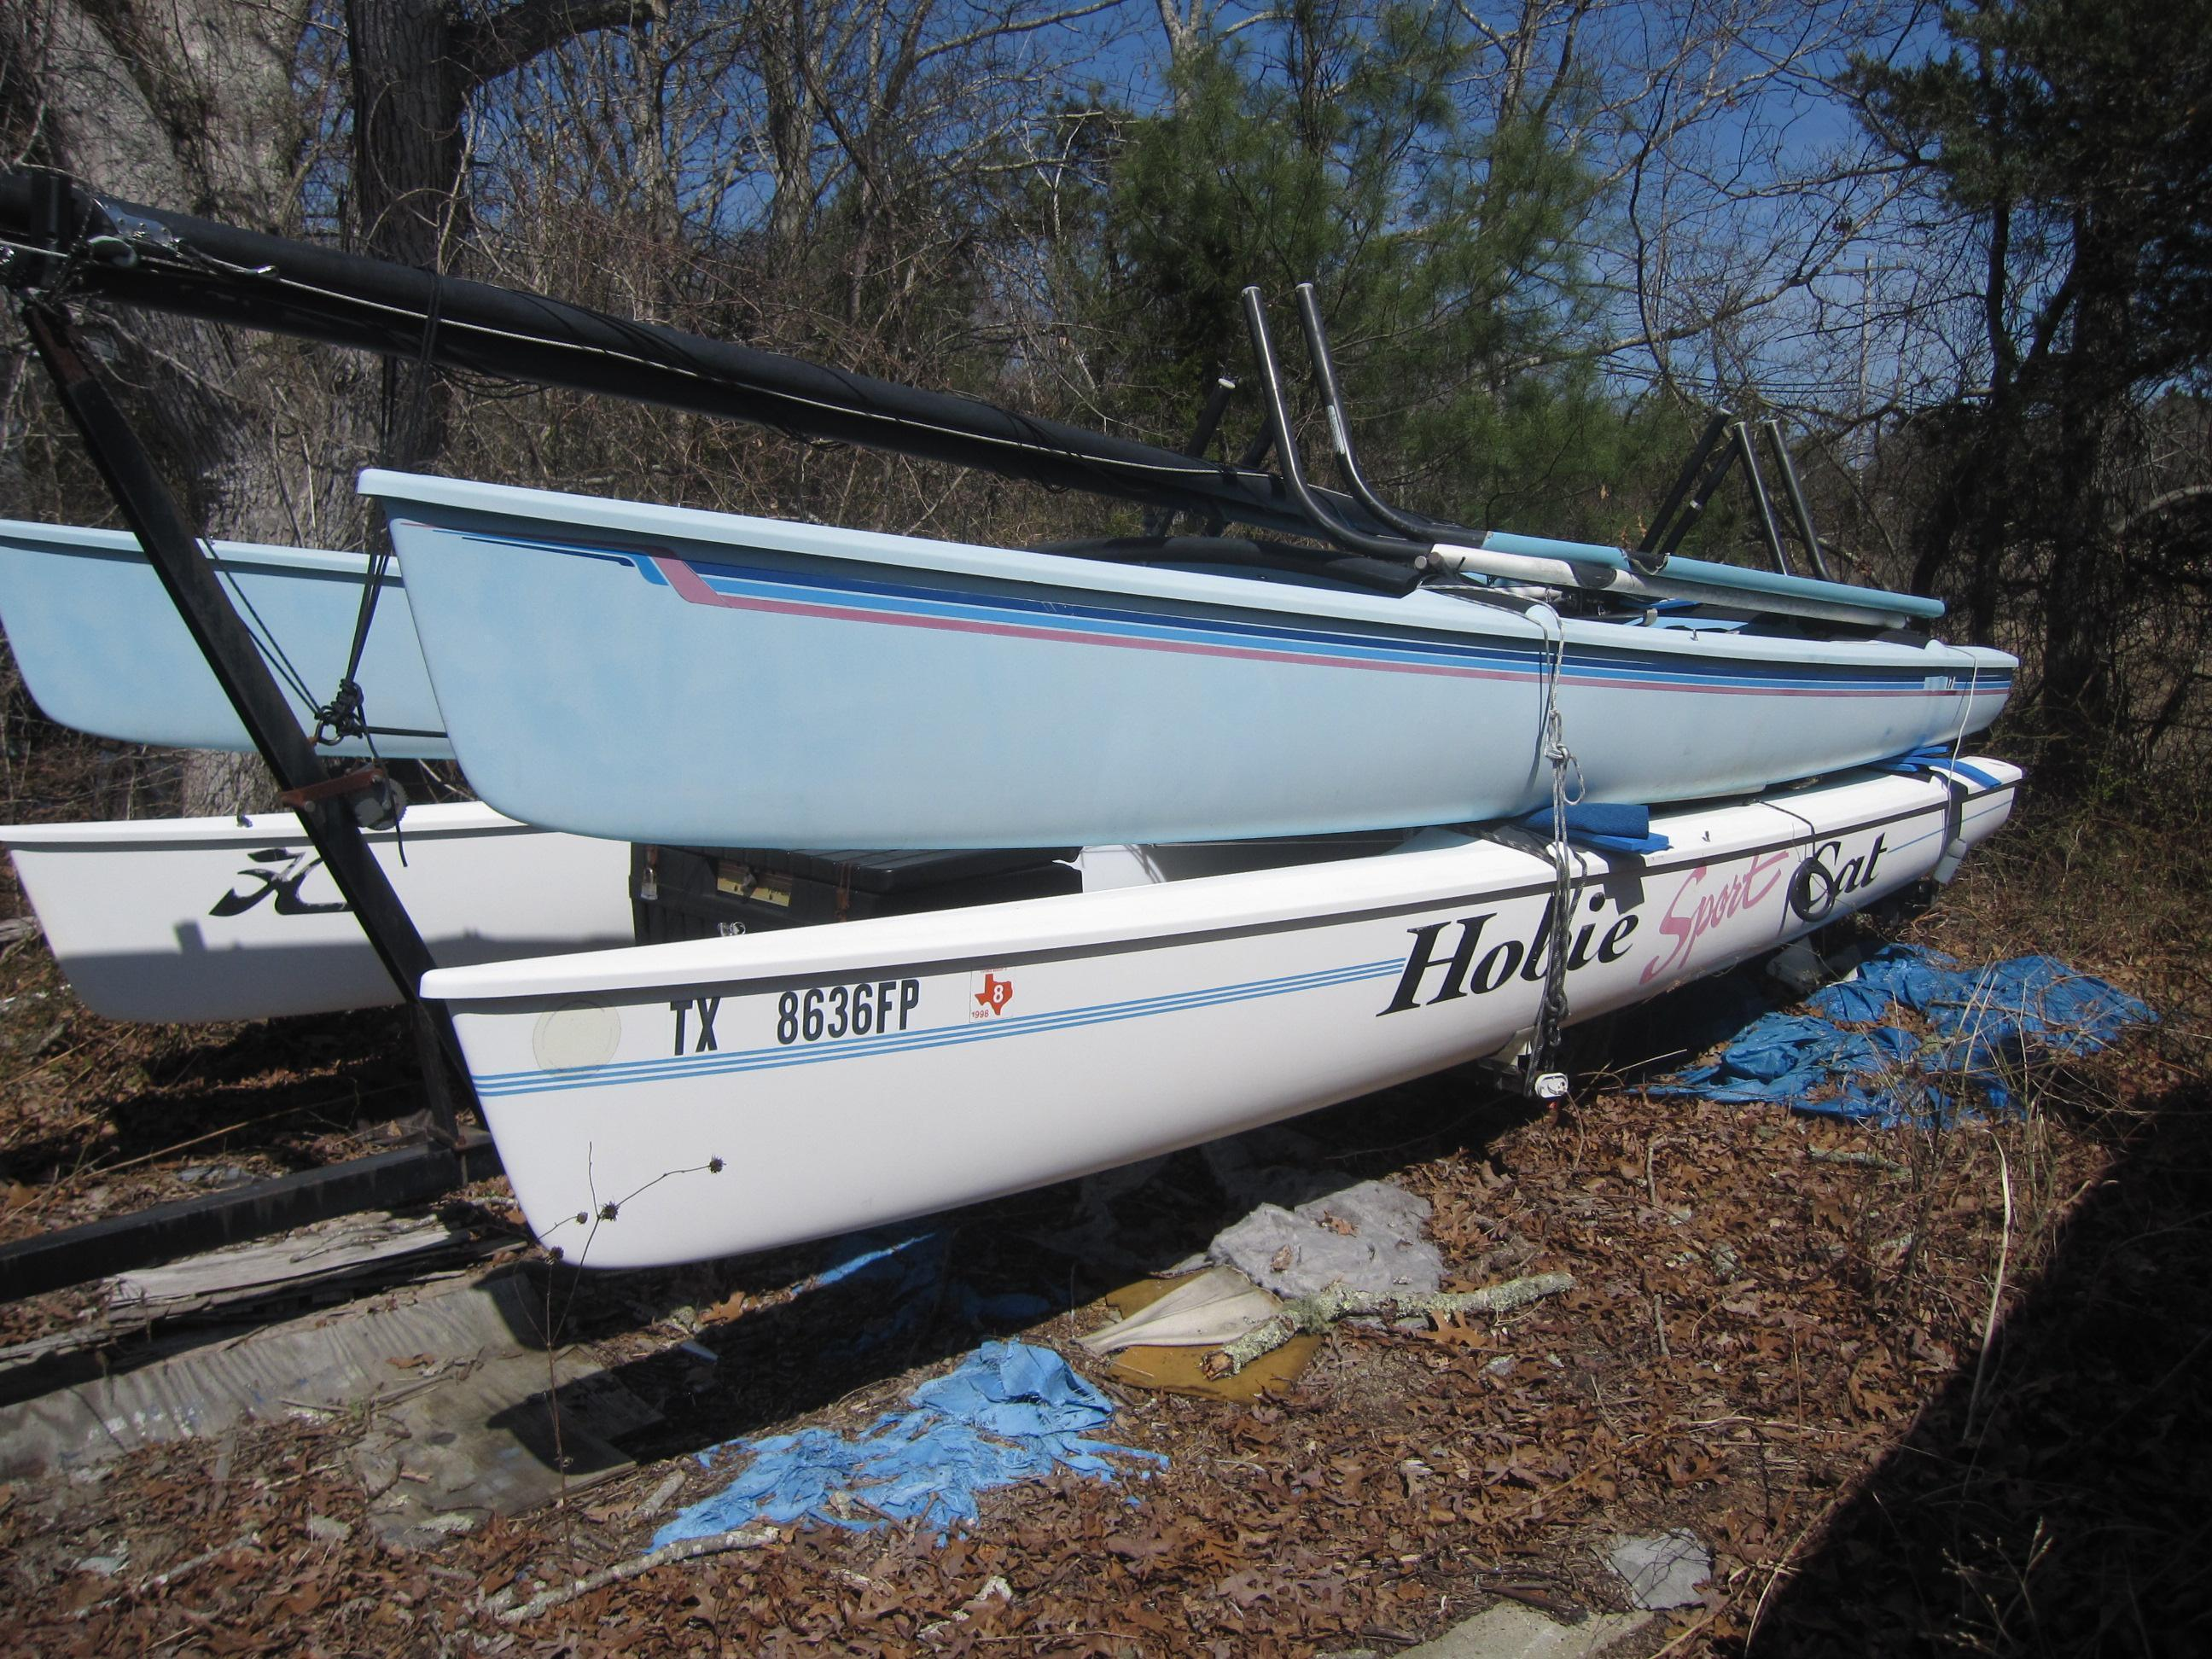 Hobie Cat 17 Sport, Wareham